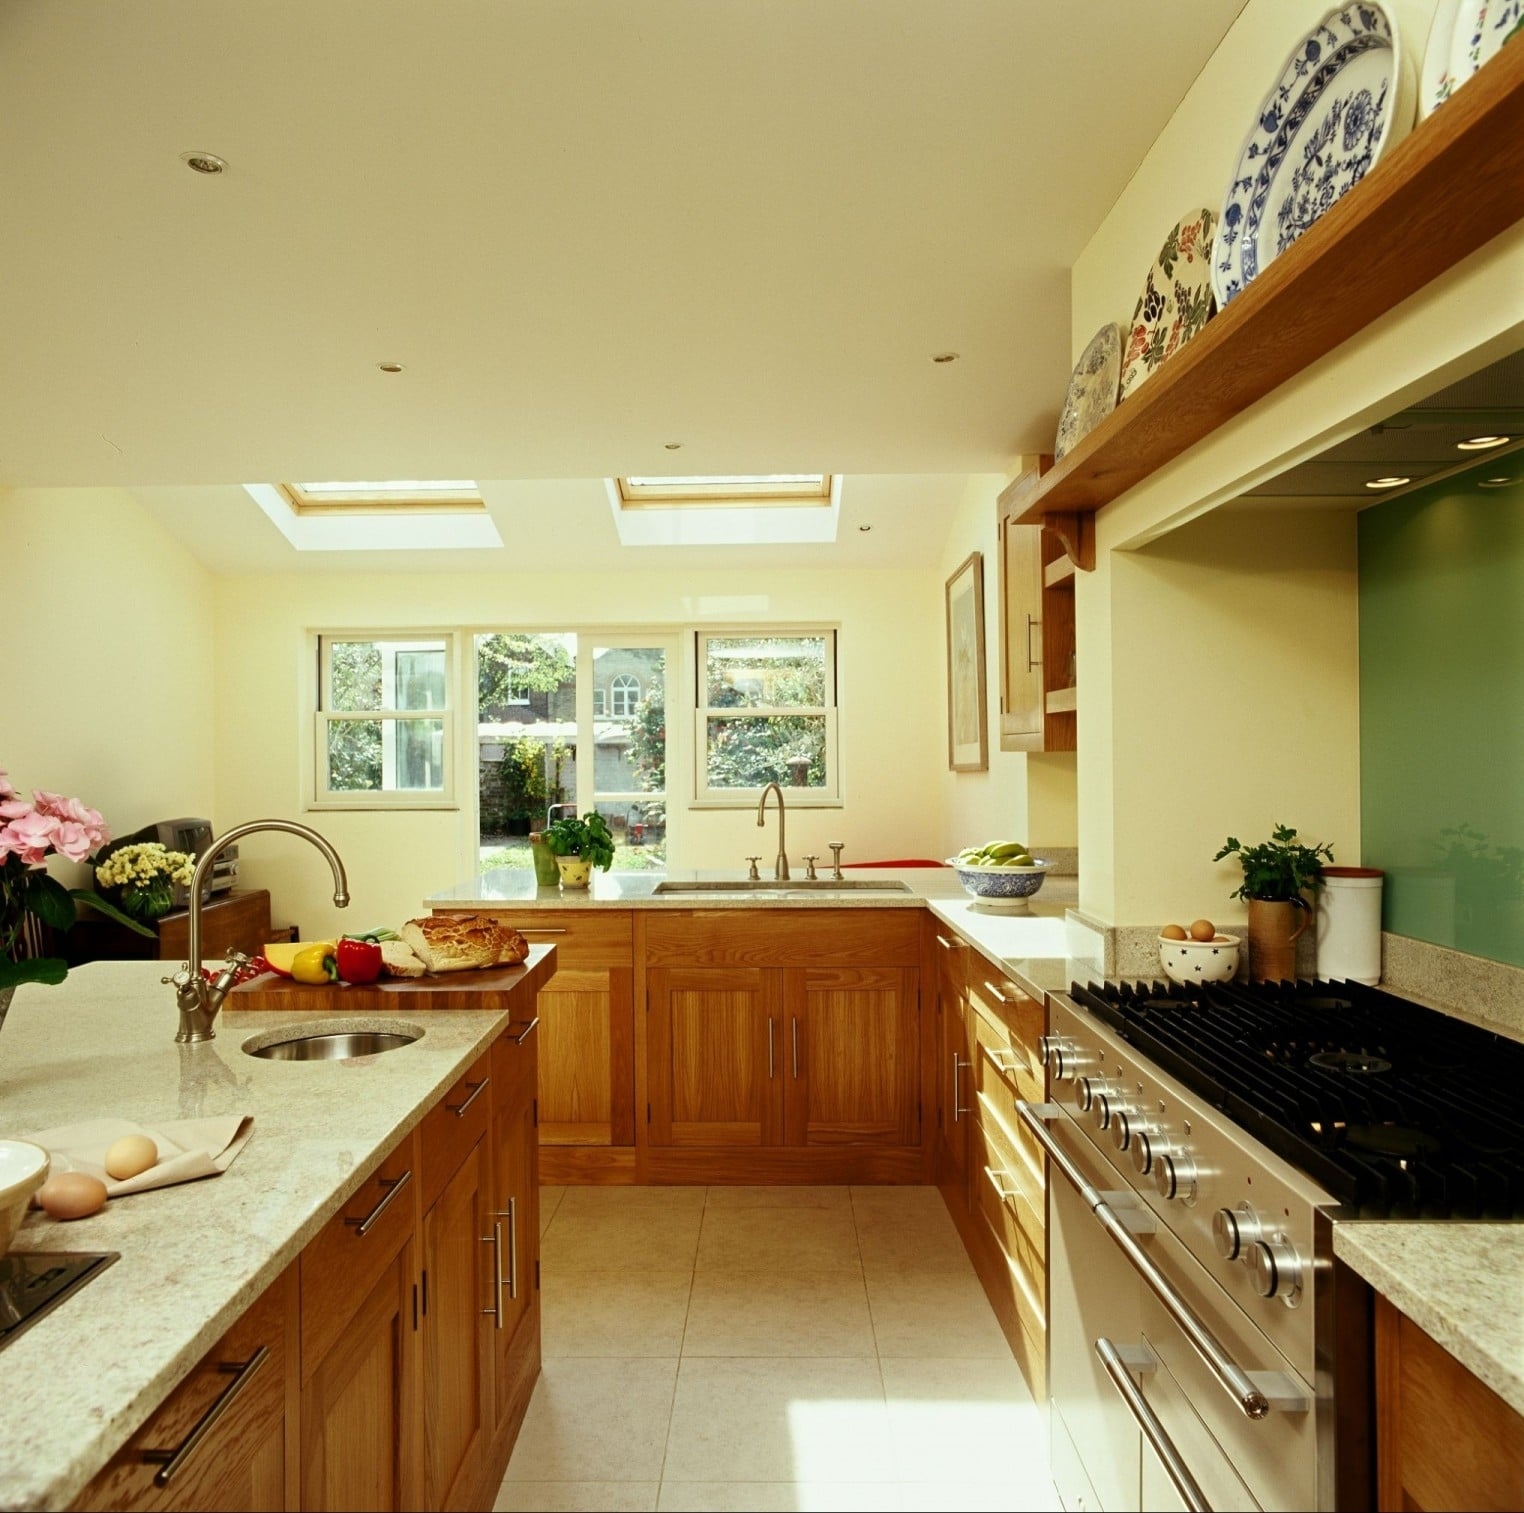 Bespoke Kitchens No Range To Choose From Here Just Your Imagination - Kitchen designs sa